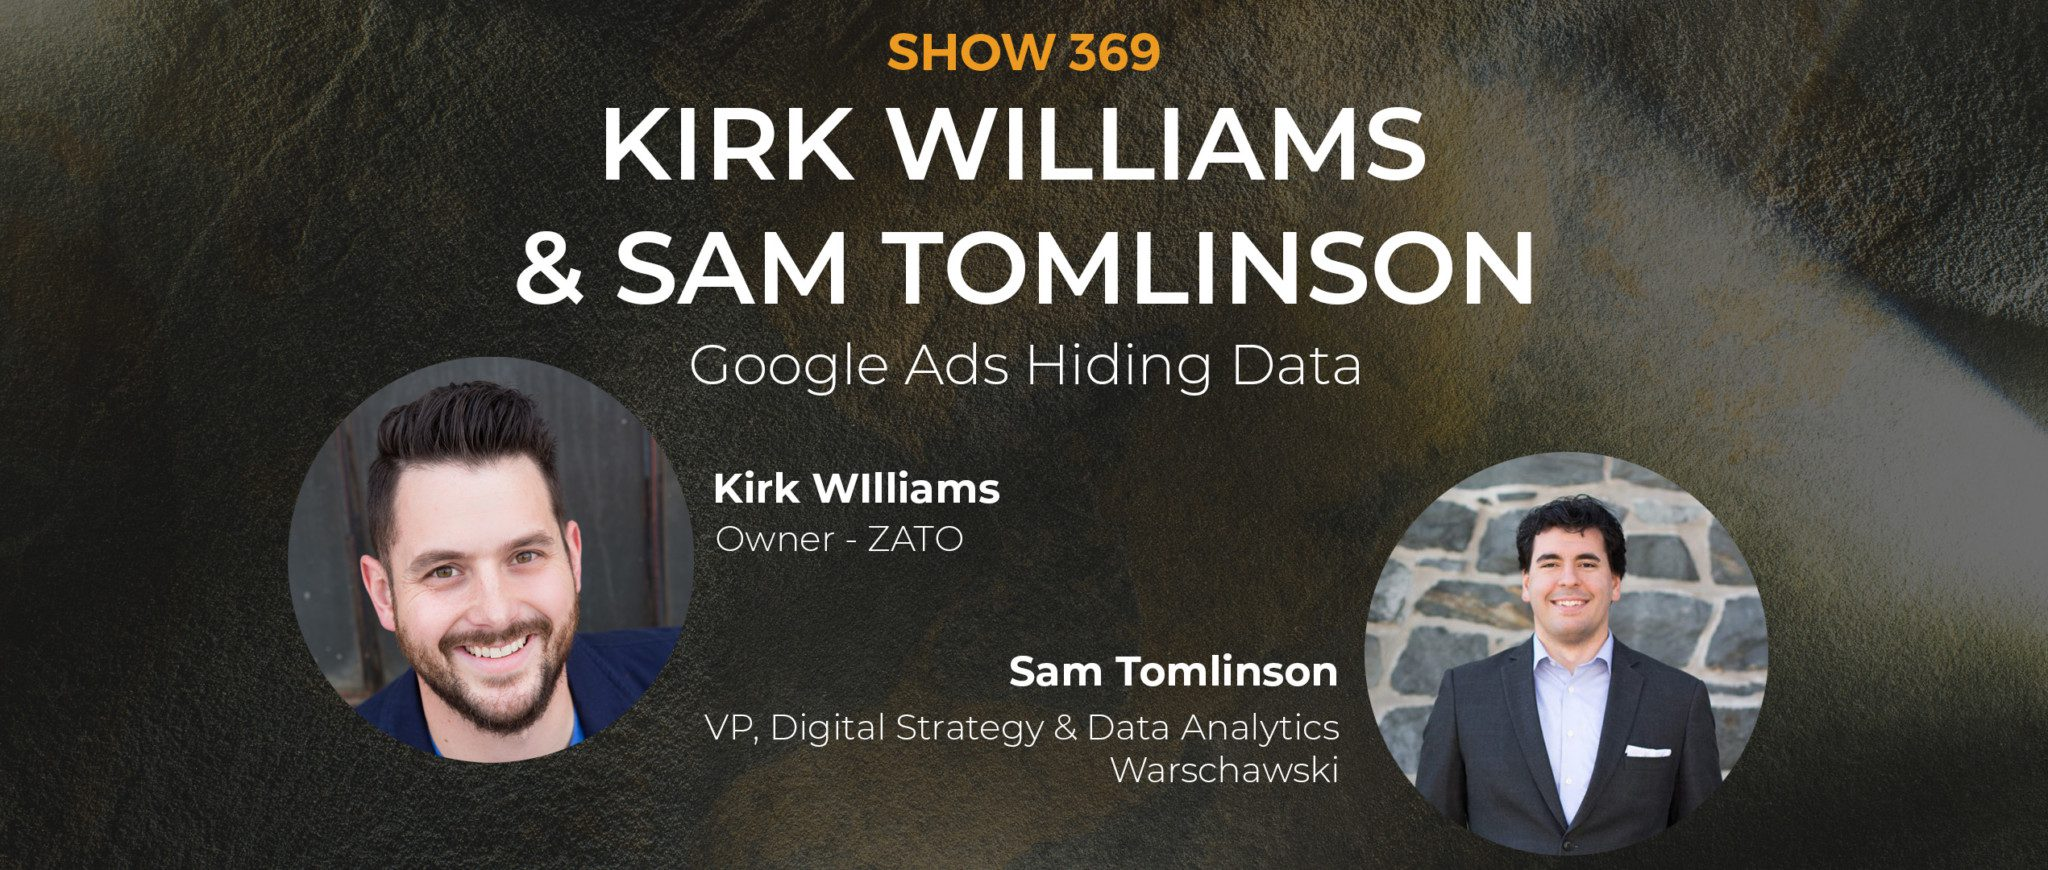 EP 369: Google Ads Hiding Data with Kirk Williams and Sam Tomlinson